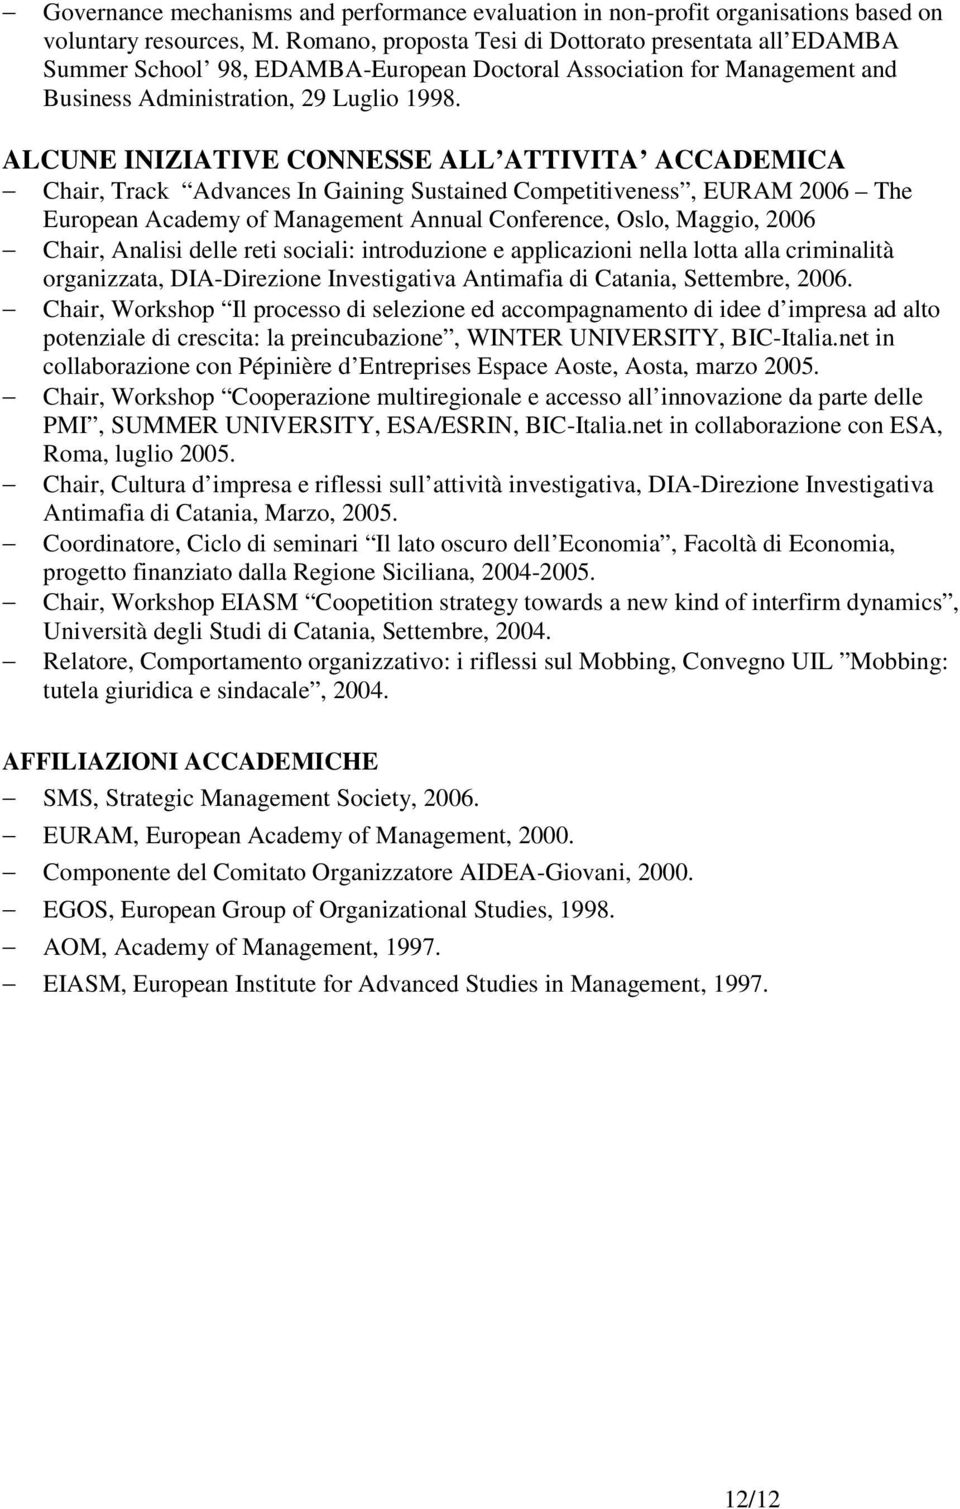 ALCUNE INIZIATIVE CONNESSE ALL ATTIVITA ACCADEMICA Chair, Track Advances In Gaining Sustained Competitiveness, EURAM 2006 The European Academy of Management Annual Conference, Oslo, Maggio, 2006